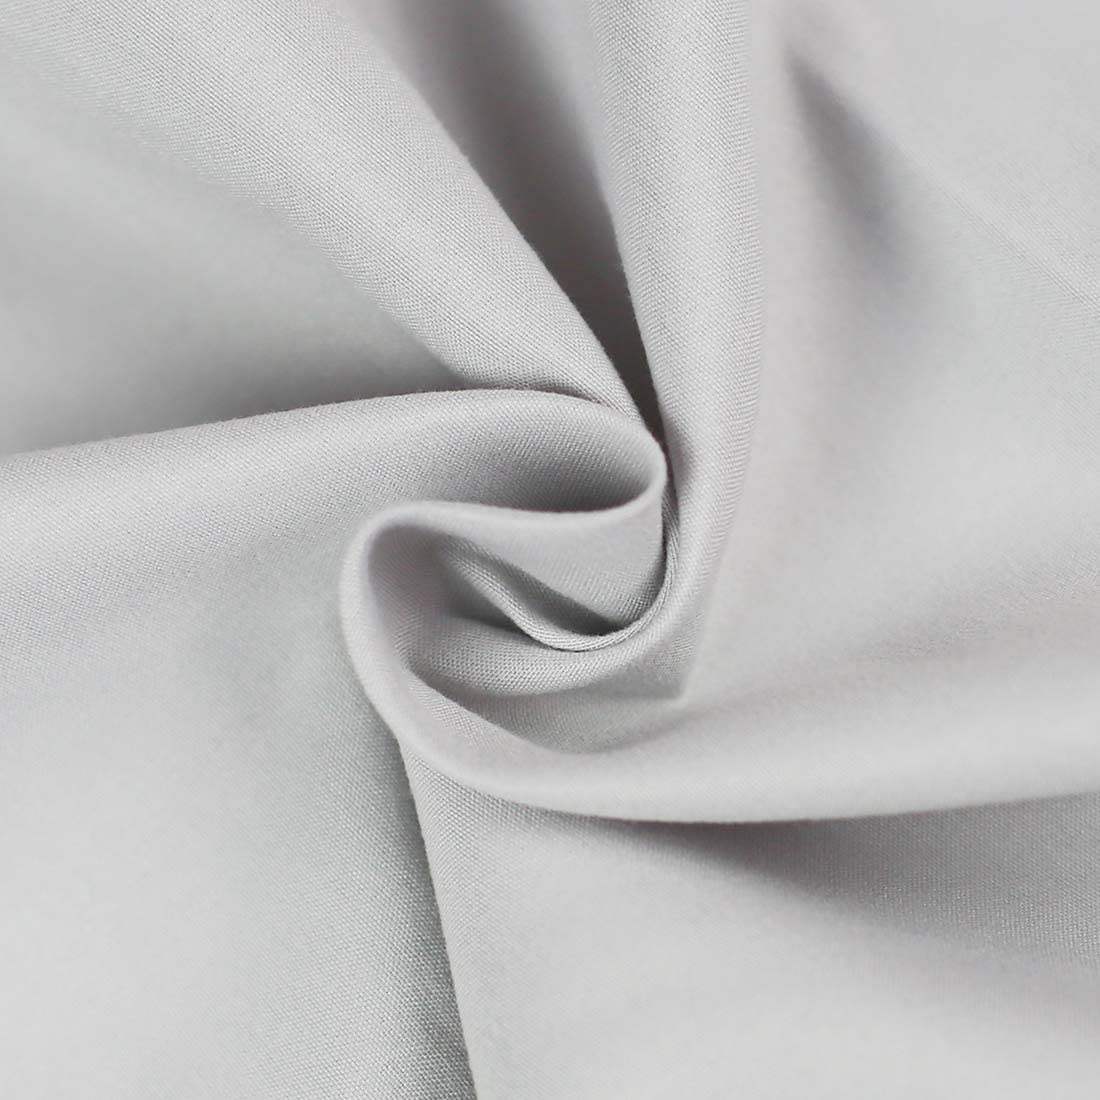 Breathable 2000 Series Bed Top Sheet Fade Resistant Ivory Full Wrinkle BASIC CHOICE 2-Pack Flat Sheets